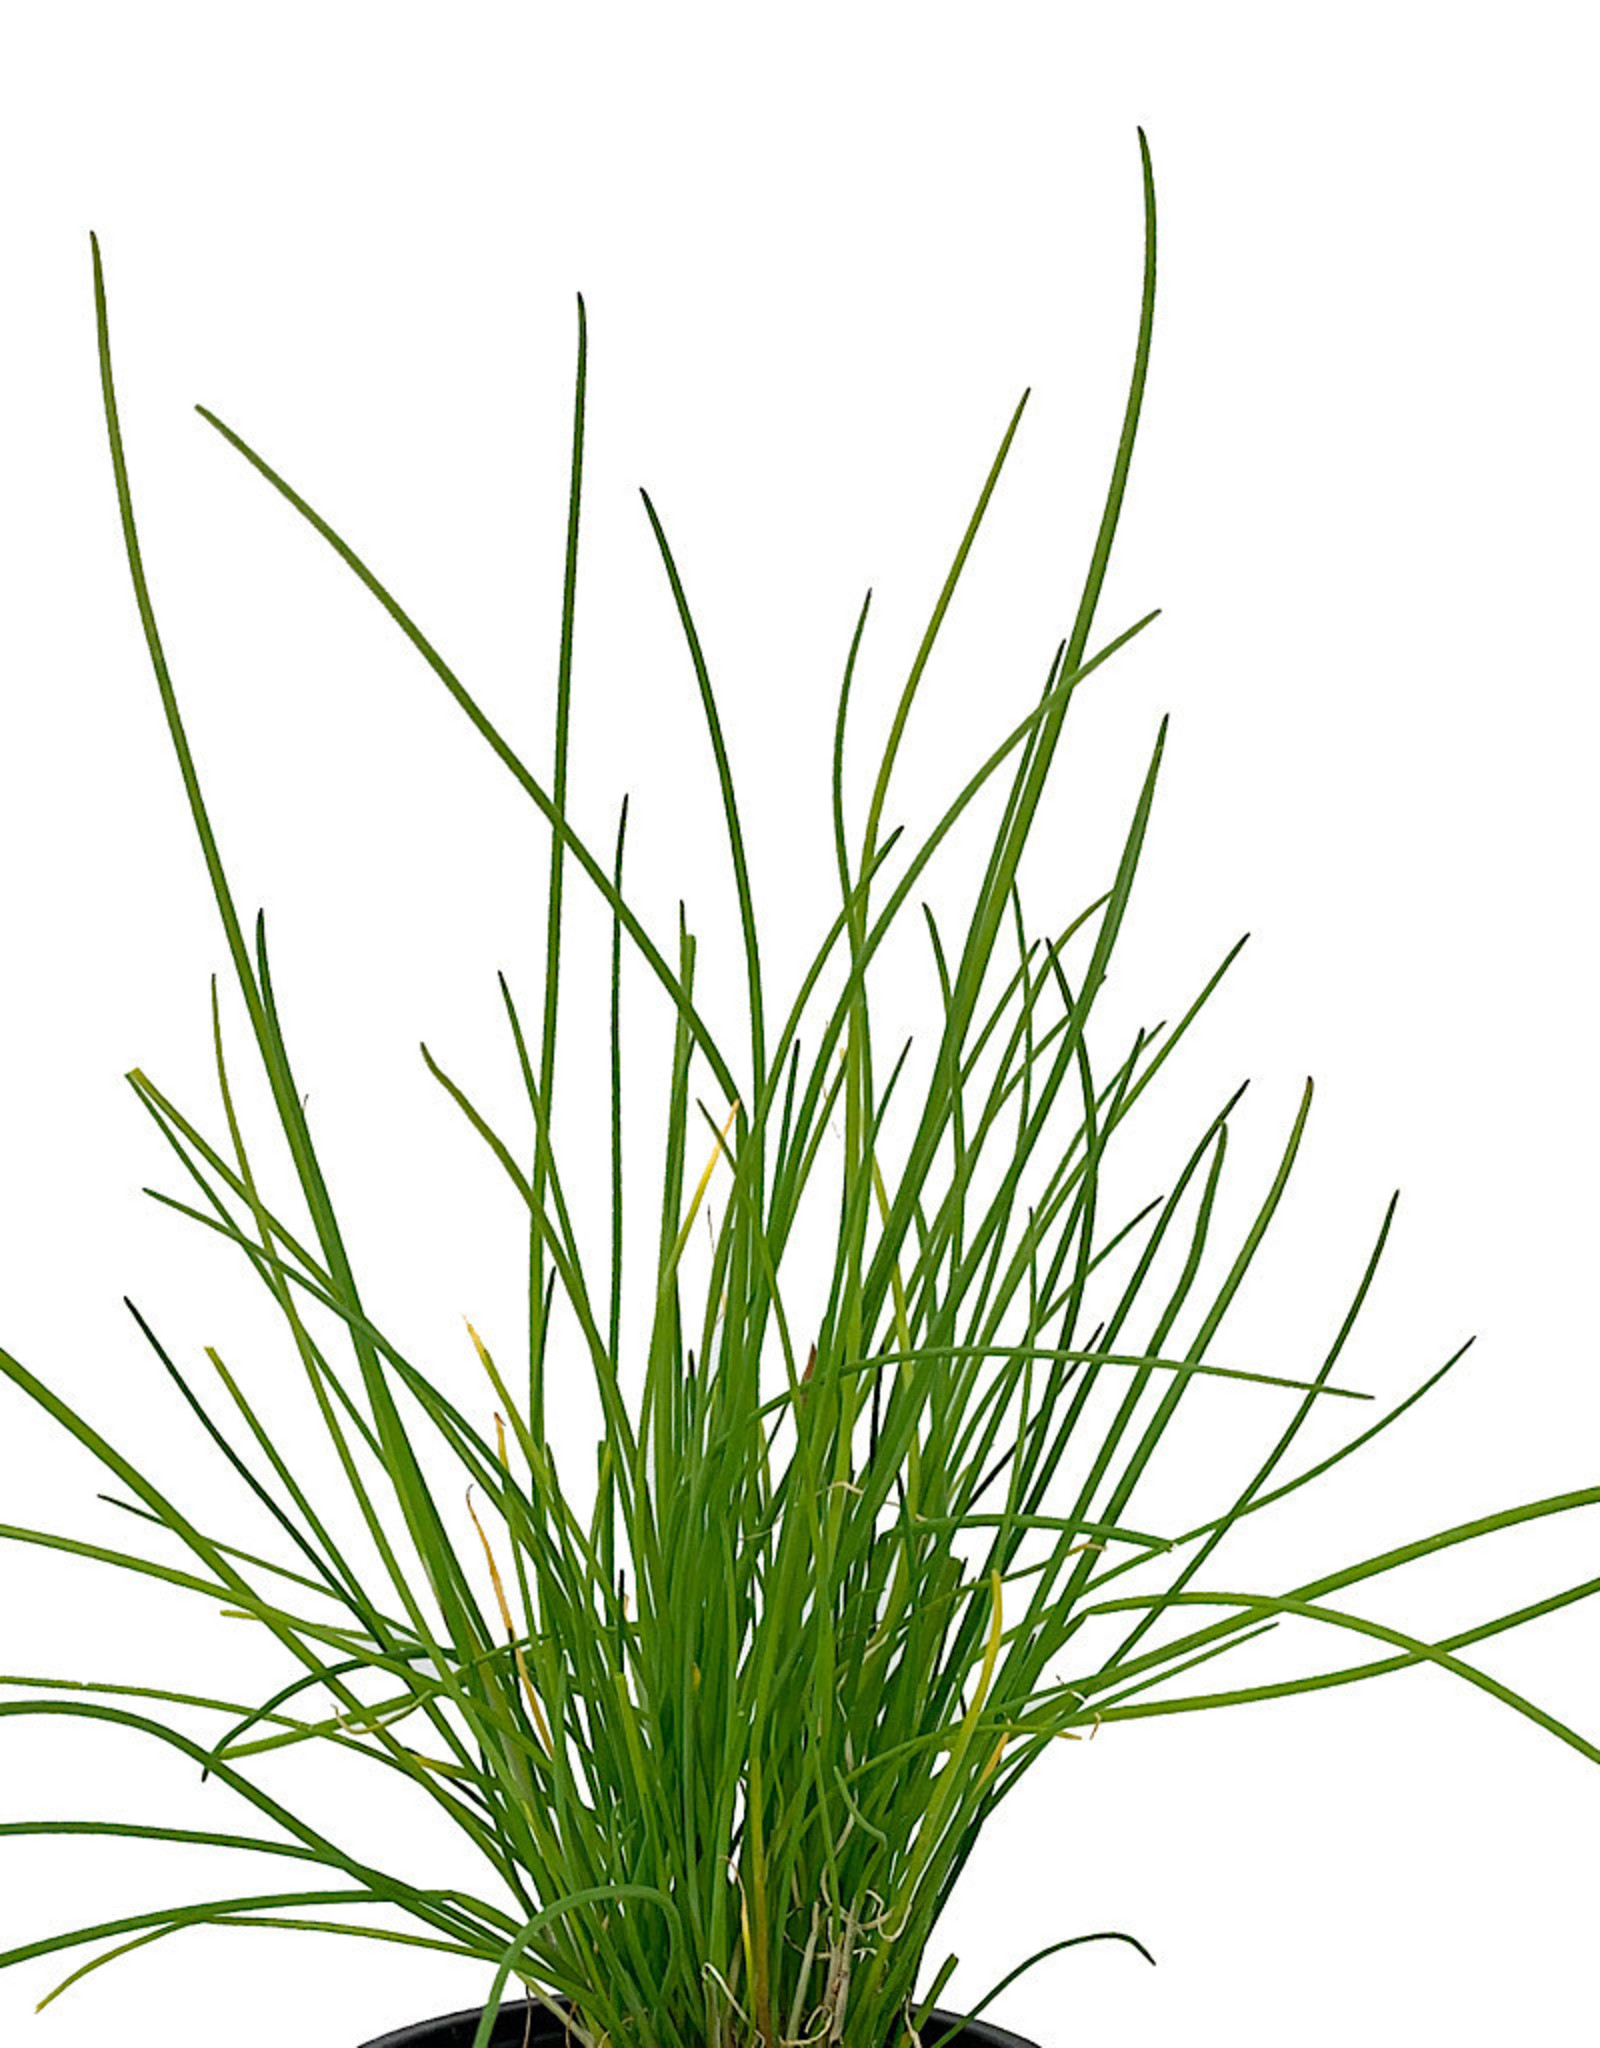 Chives 'Onion' 4 inch